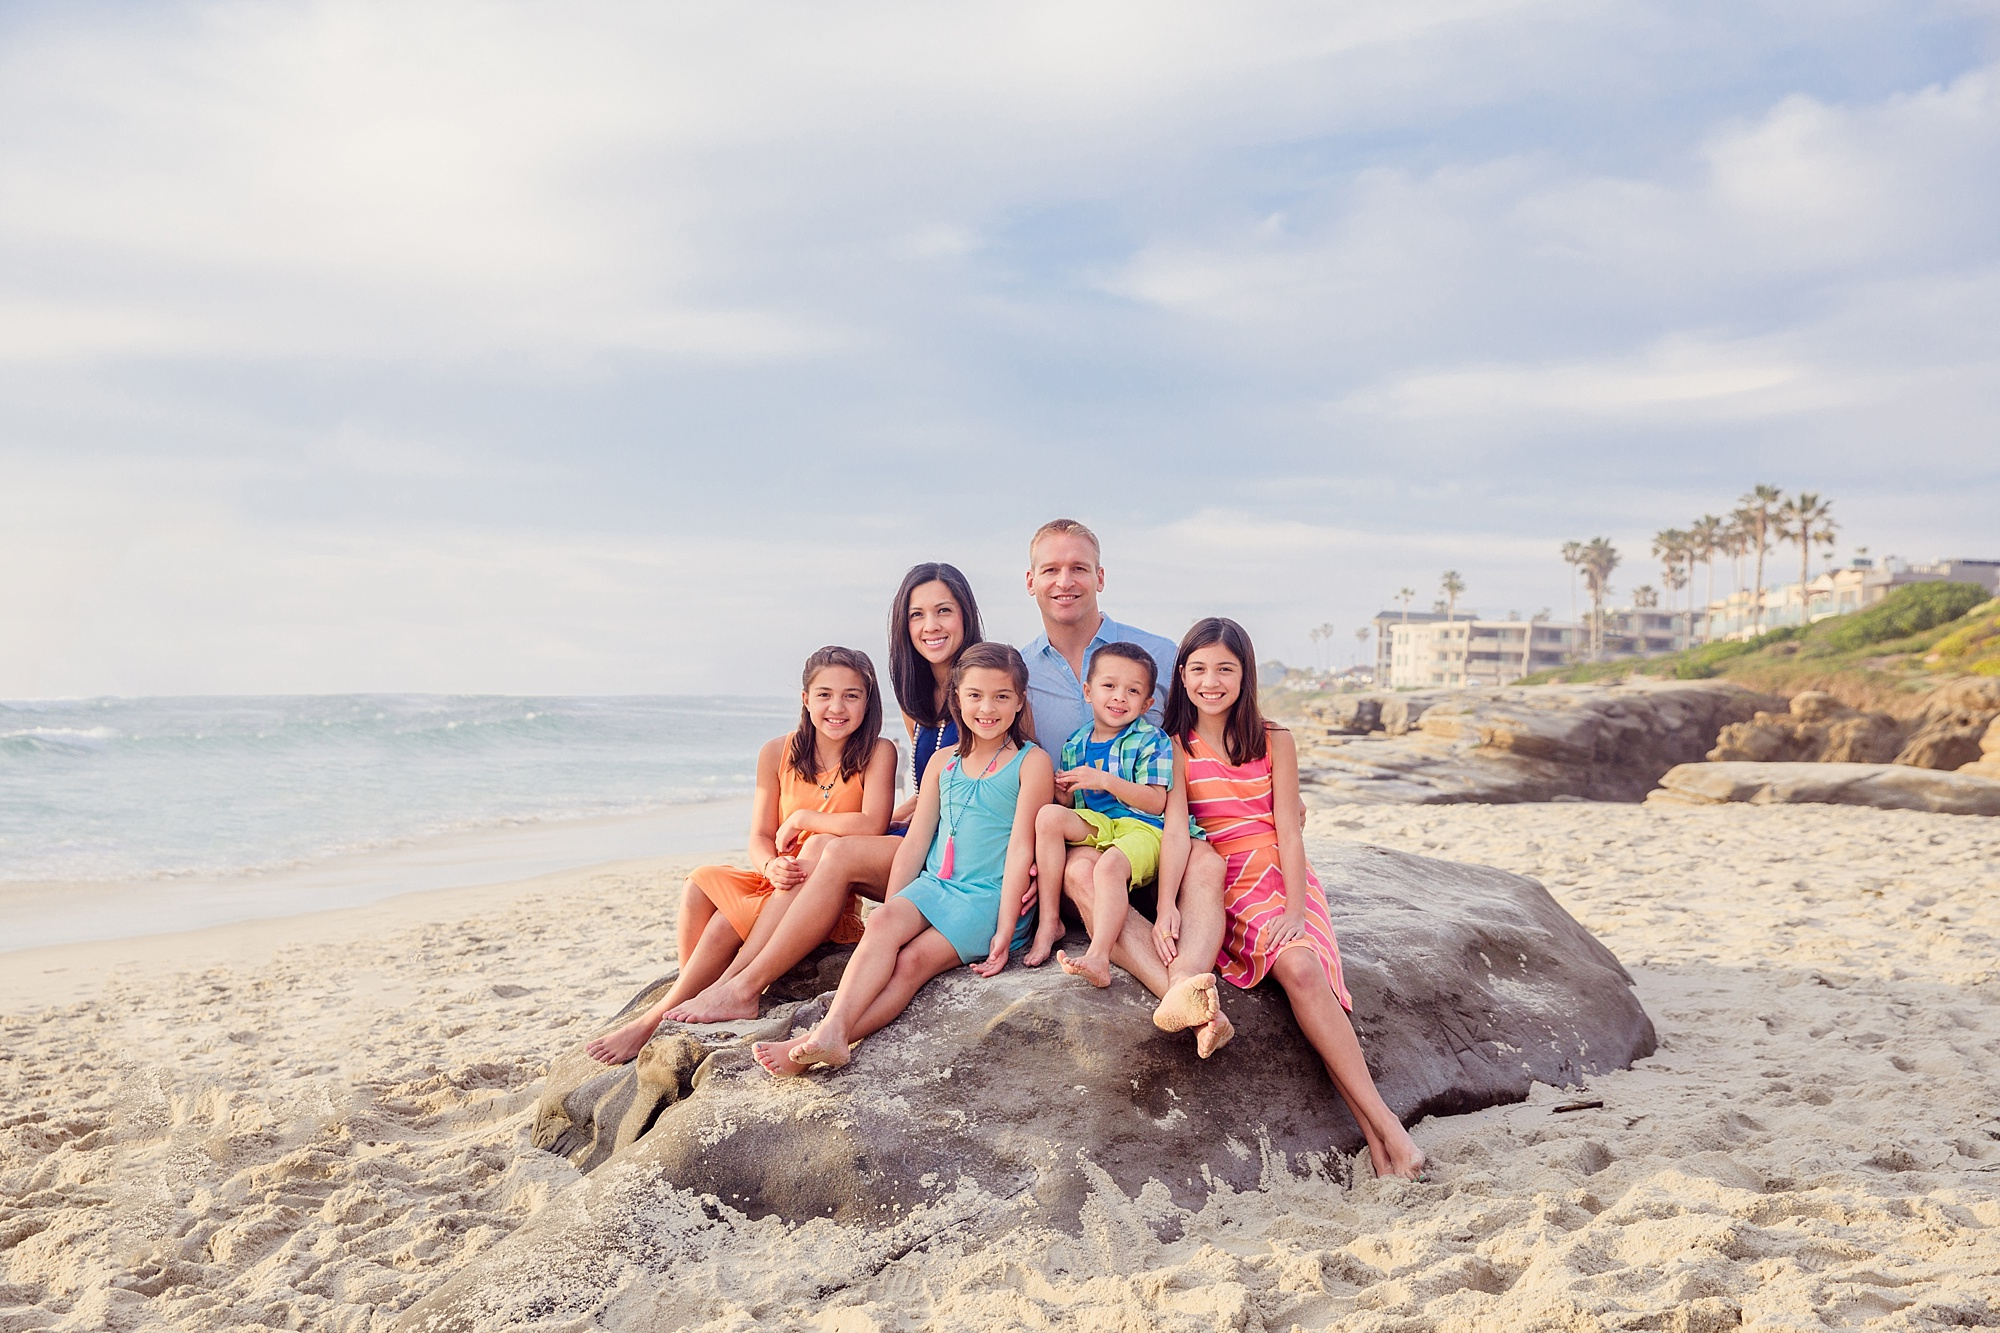 San Diego Photographer | San Diego Beach Photographer